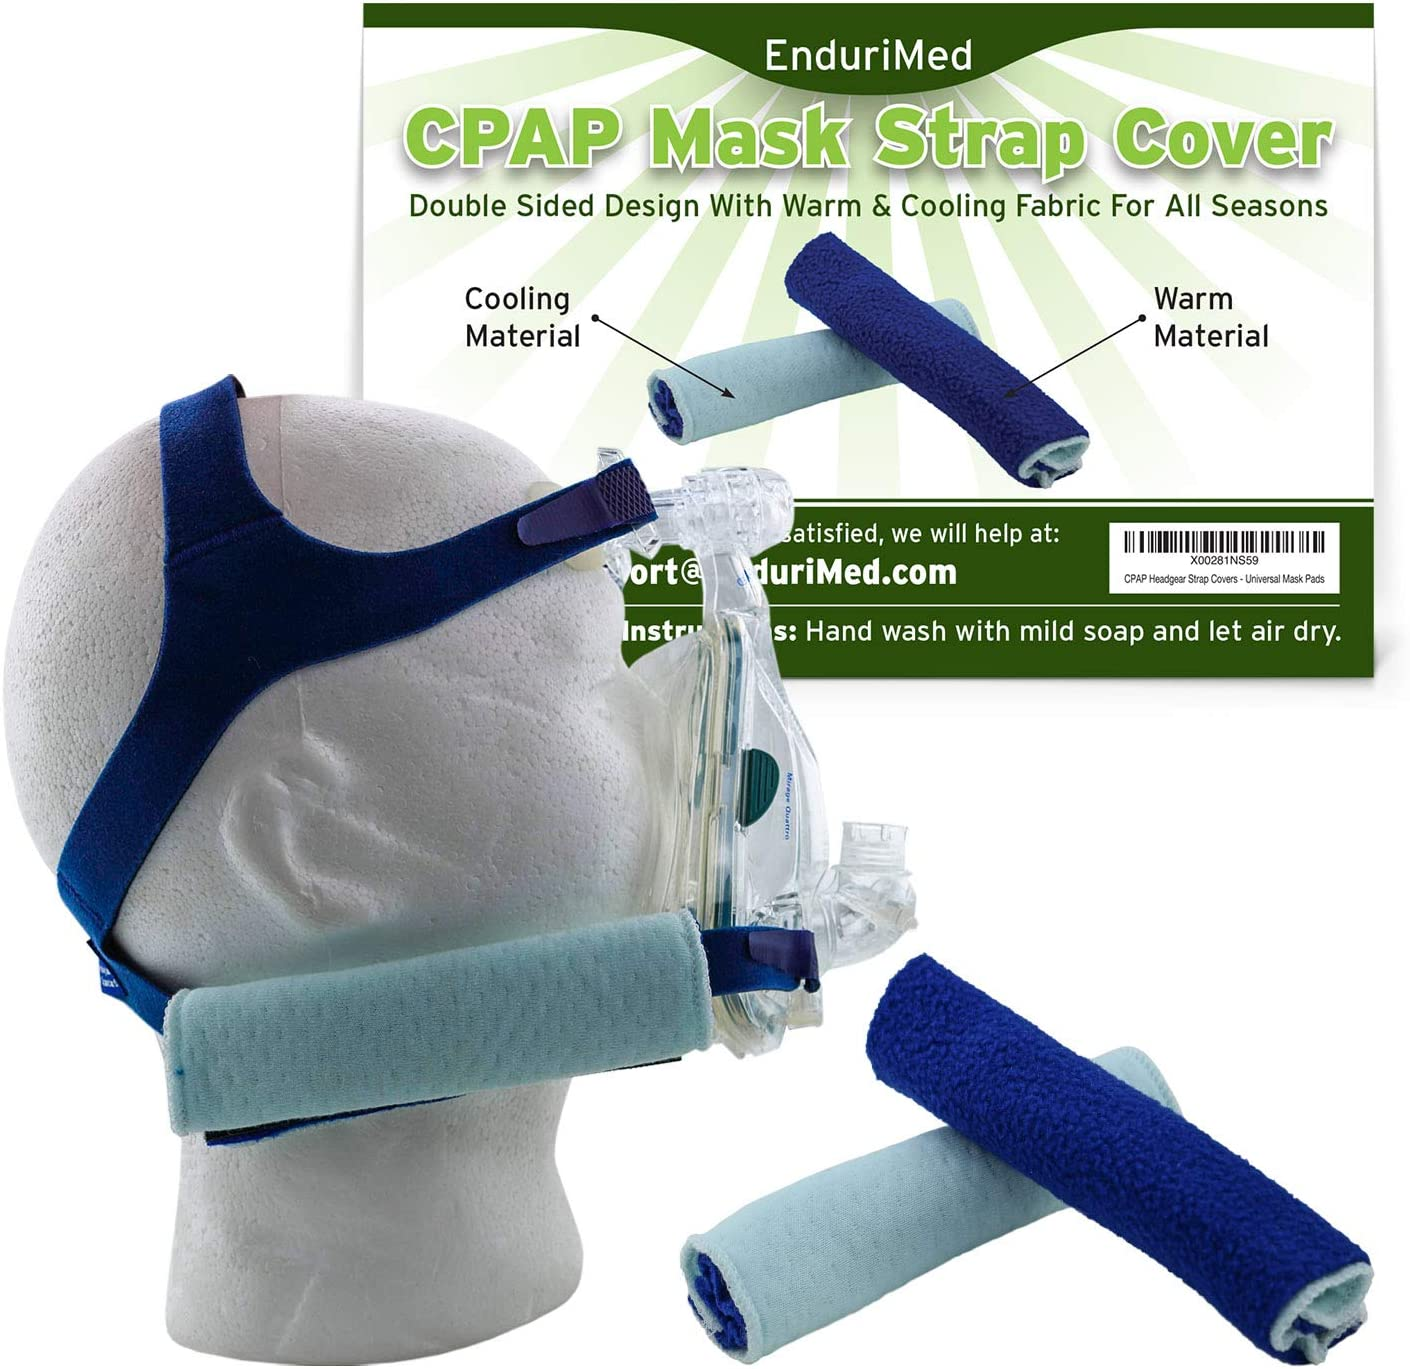 2 CPAP Strap Covers – Superior Comfort Pads to wrap CPAP Nasal mask Straps – No Skin Irritation, no Strap Marks – Softest, Breathable Fabrics, Double Stitching, Advanced Cooling CPAP Cushions